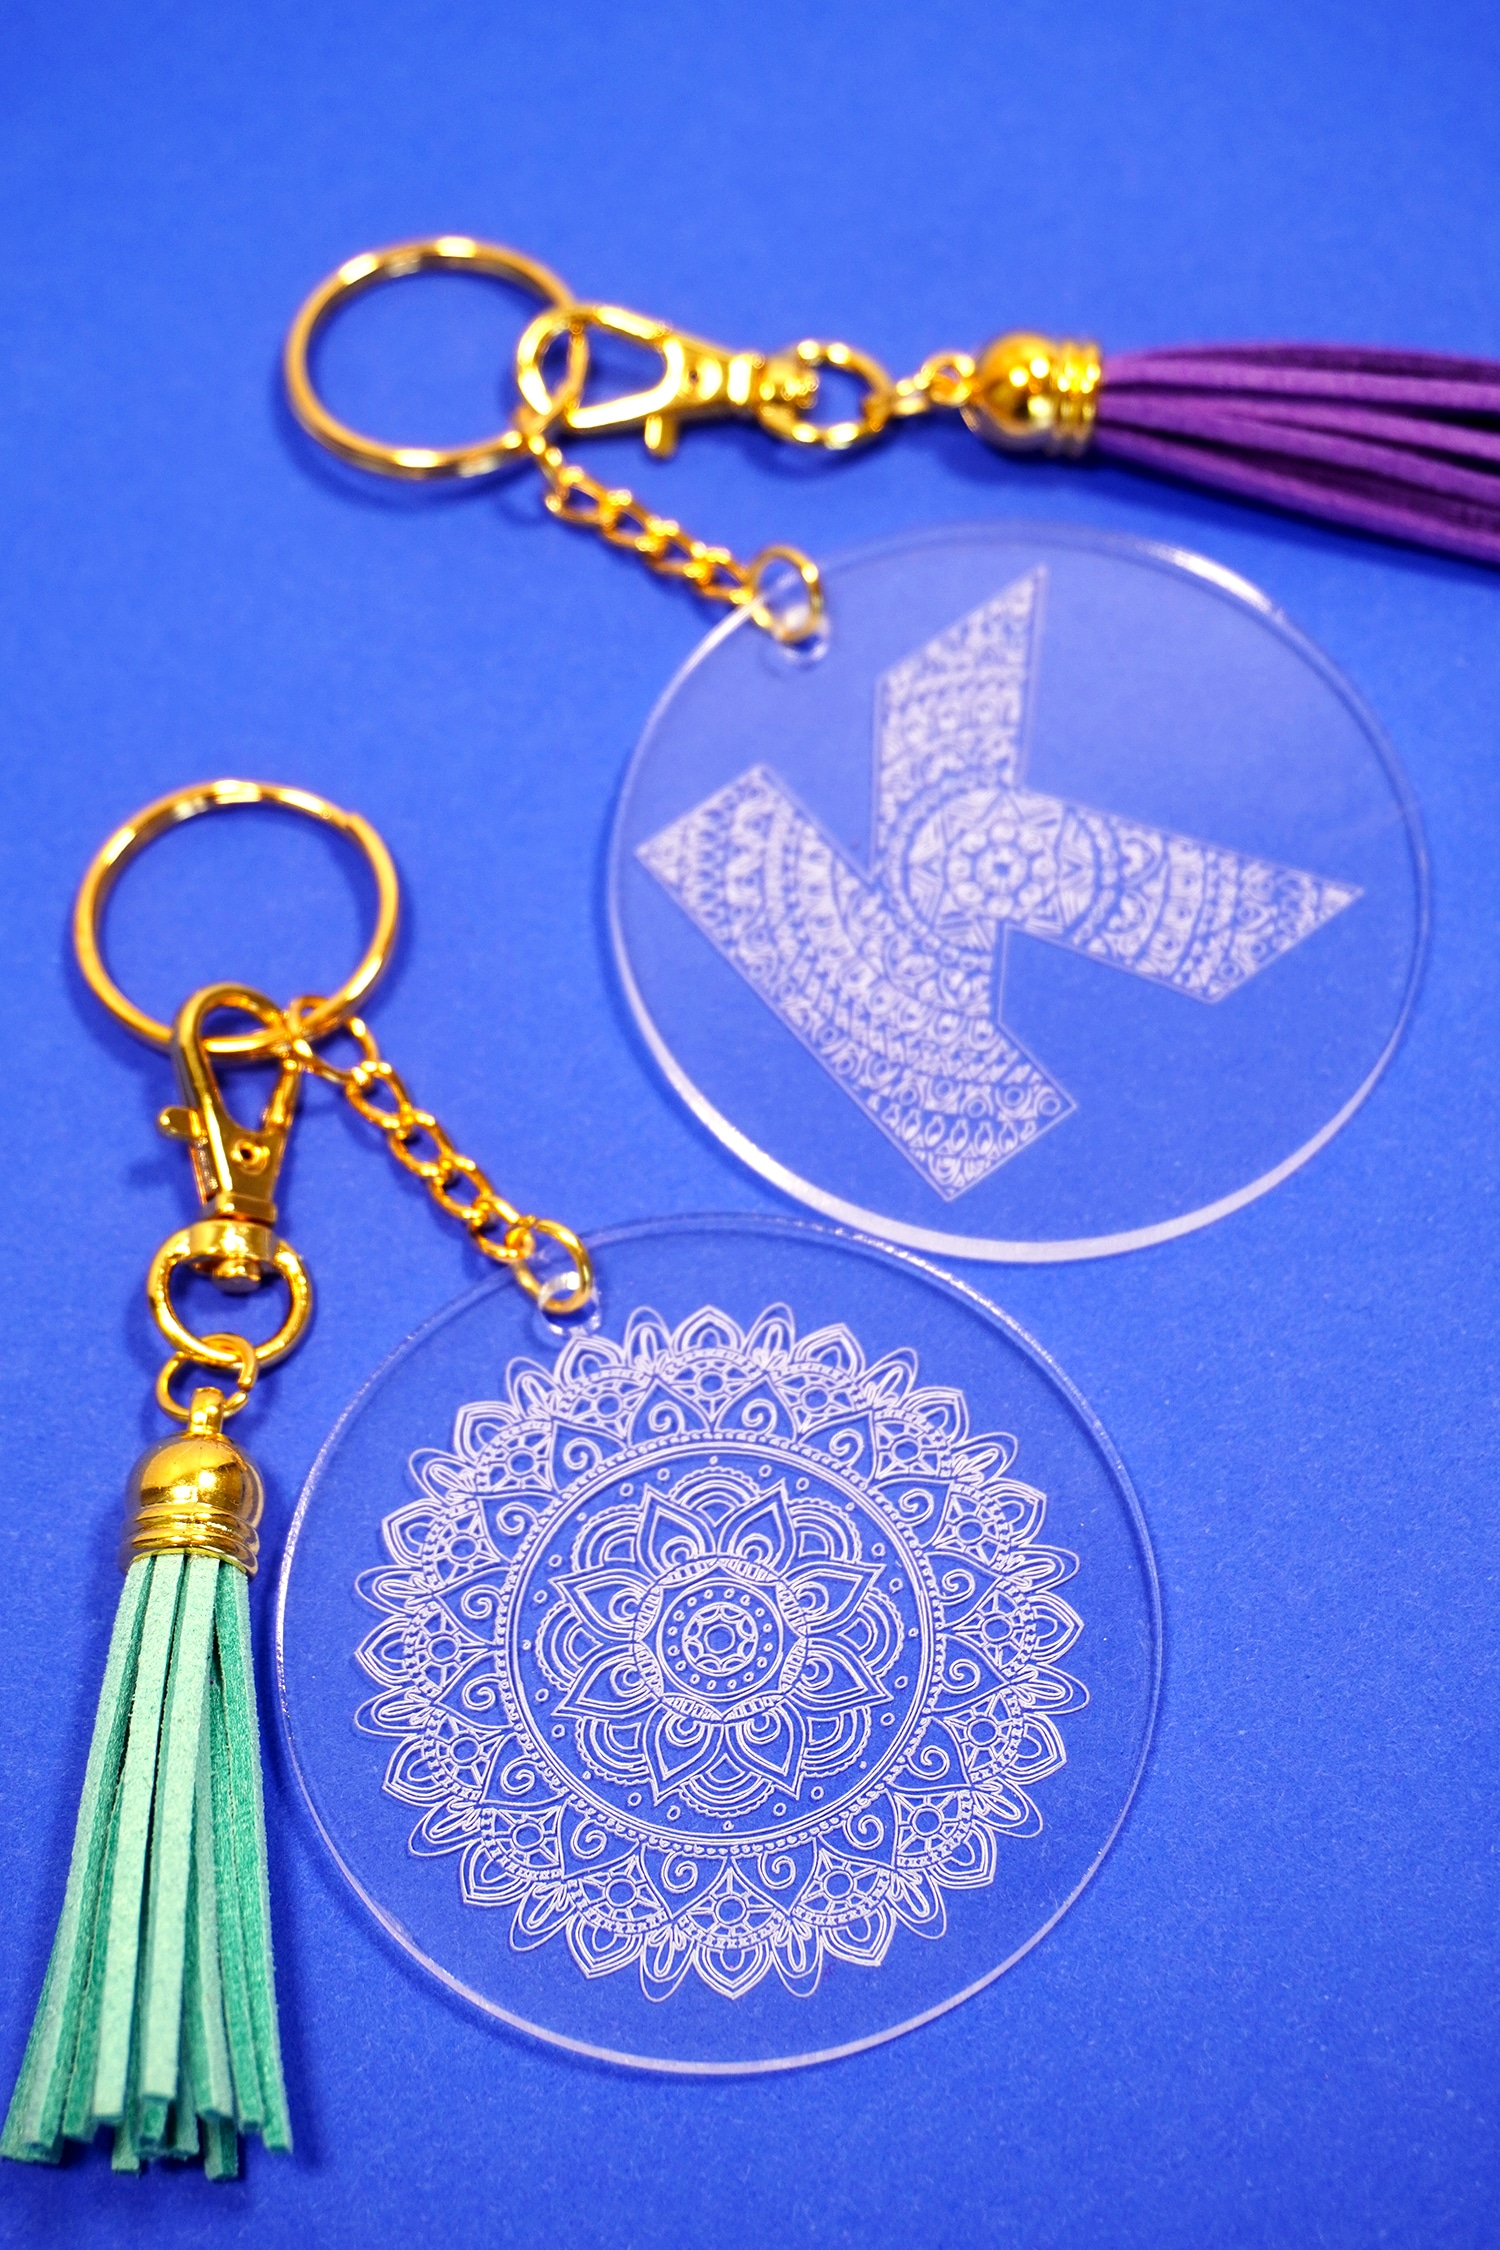 Mandala engraved acrylic keychains on a blue background made with Cricut Engraving Tip